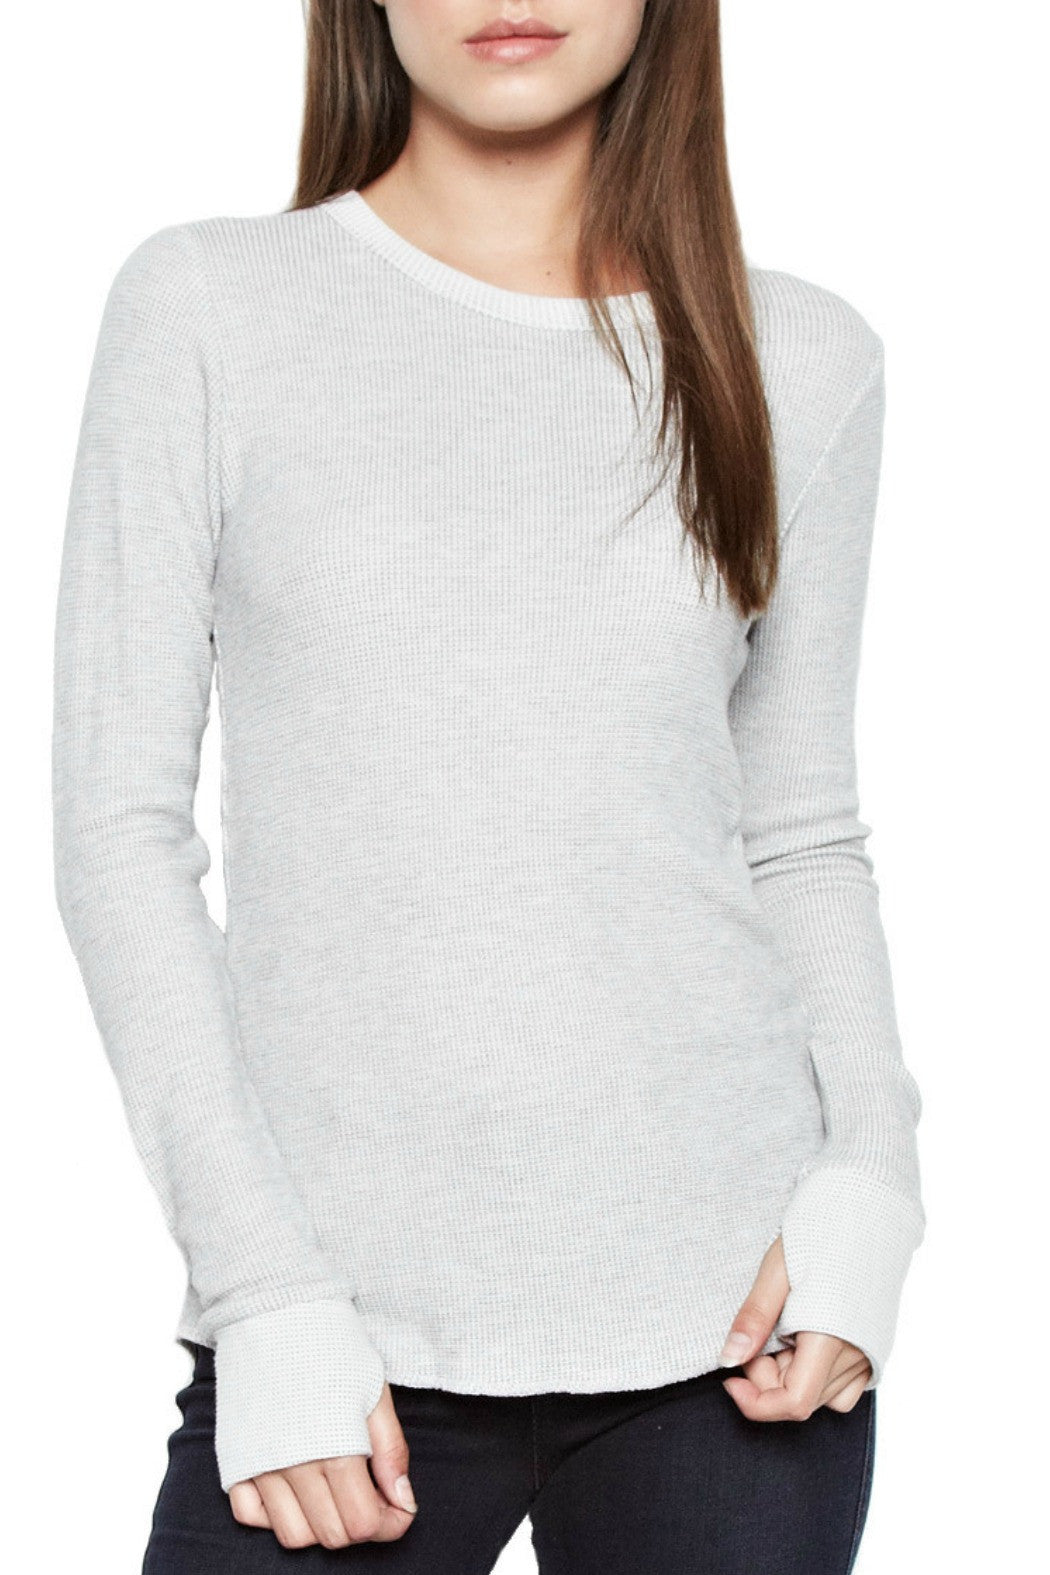 Alick LS fitted thumbhole tee - R+D Hipster Emporium | Womens & Mens Clothing - 1